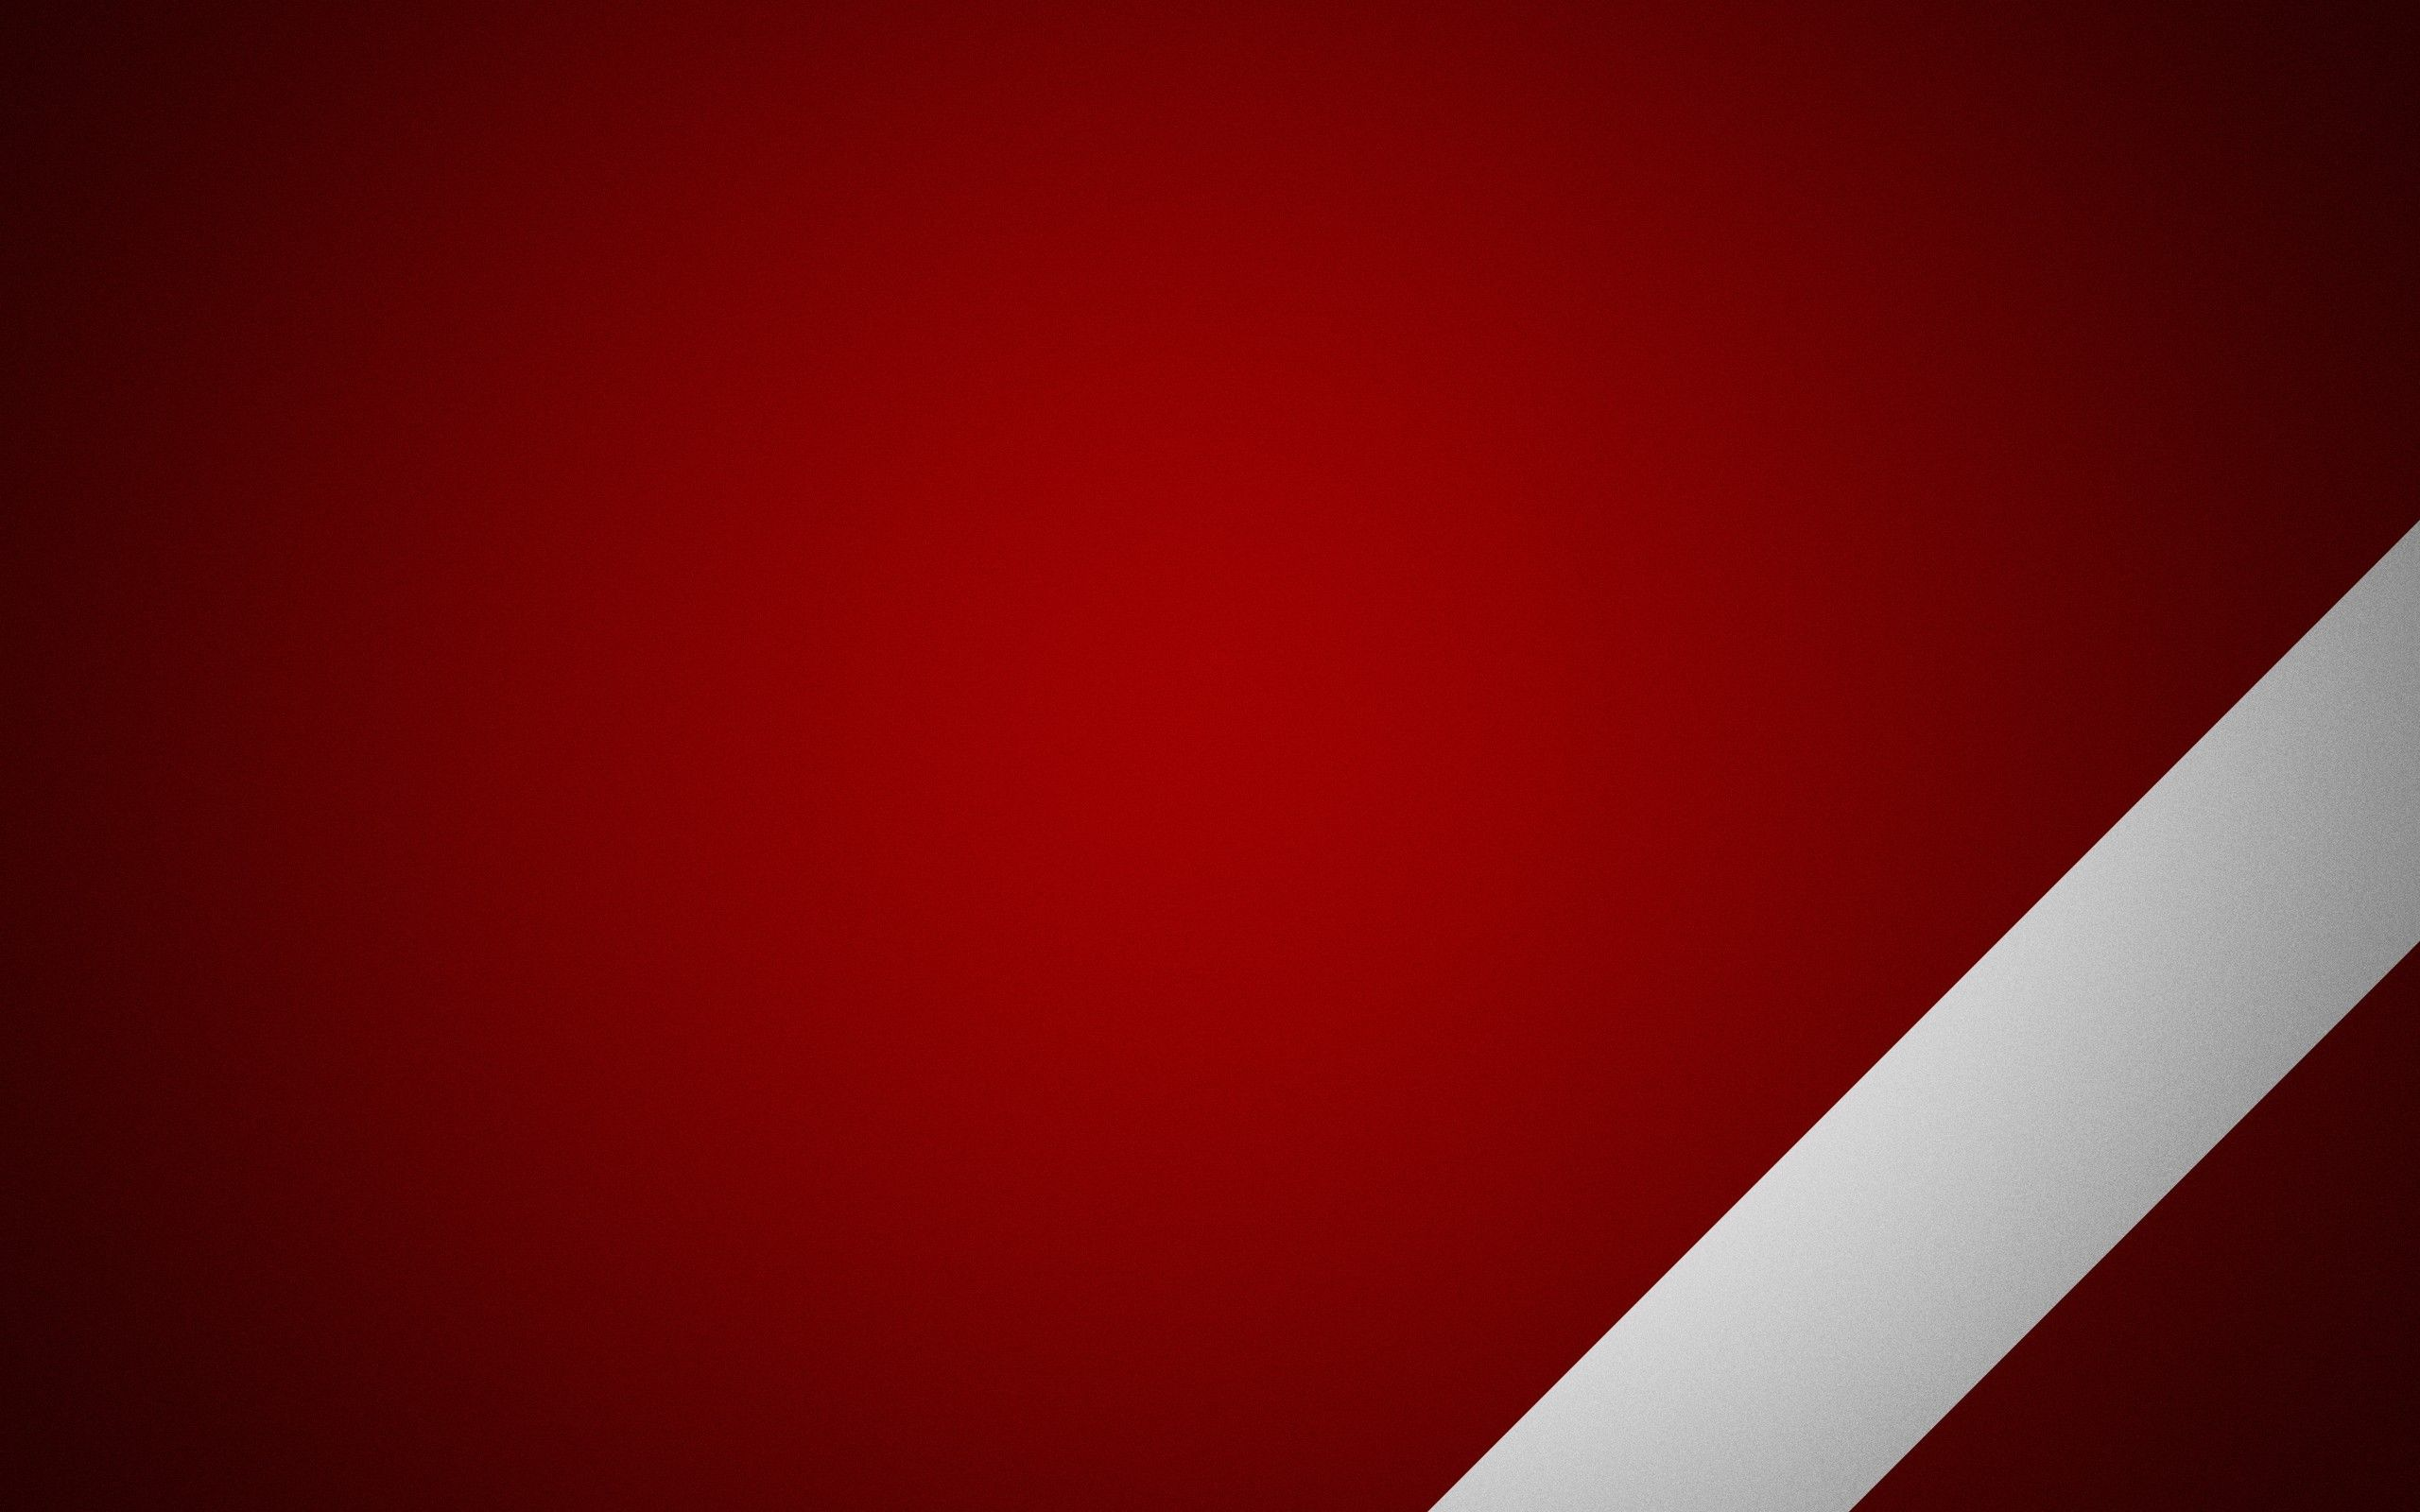 Download Red And White Wallpaper HD Gallery